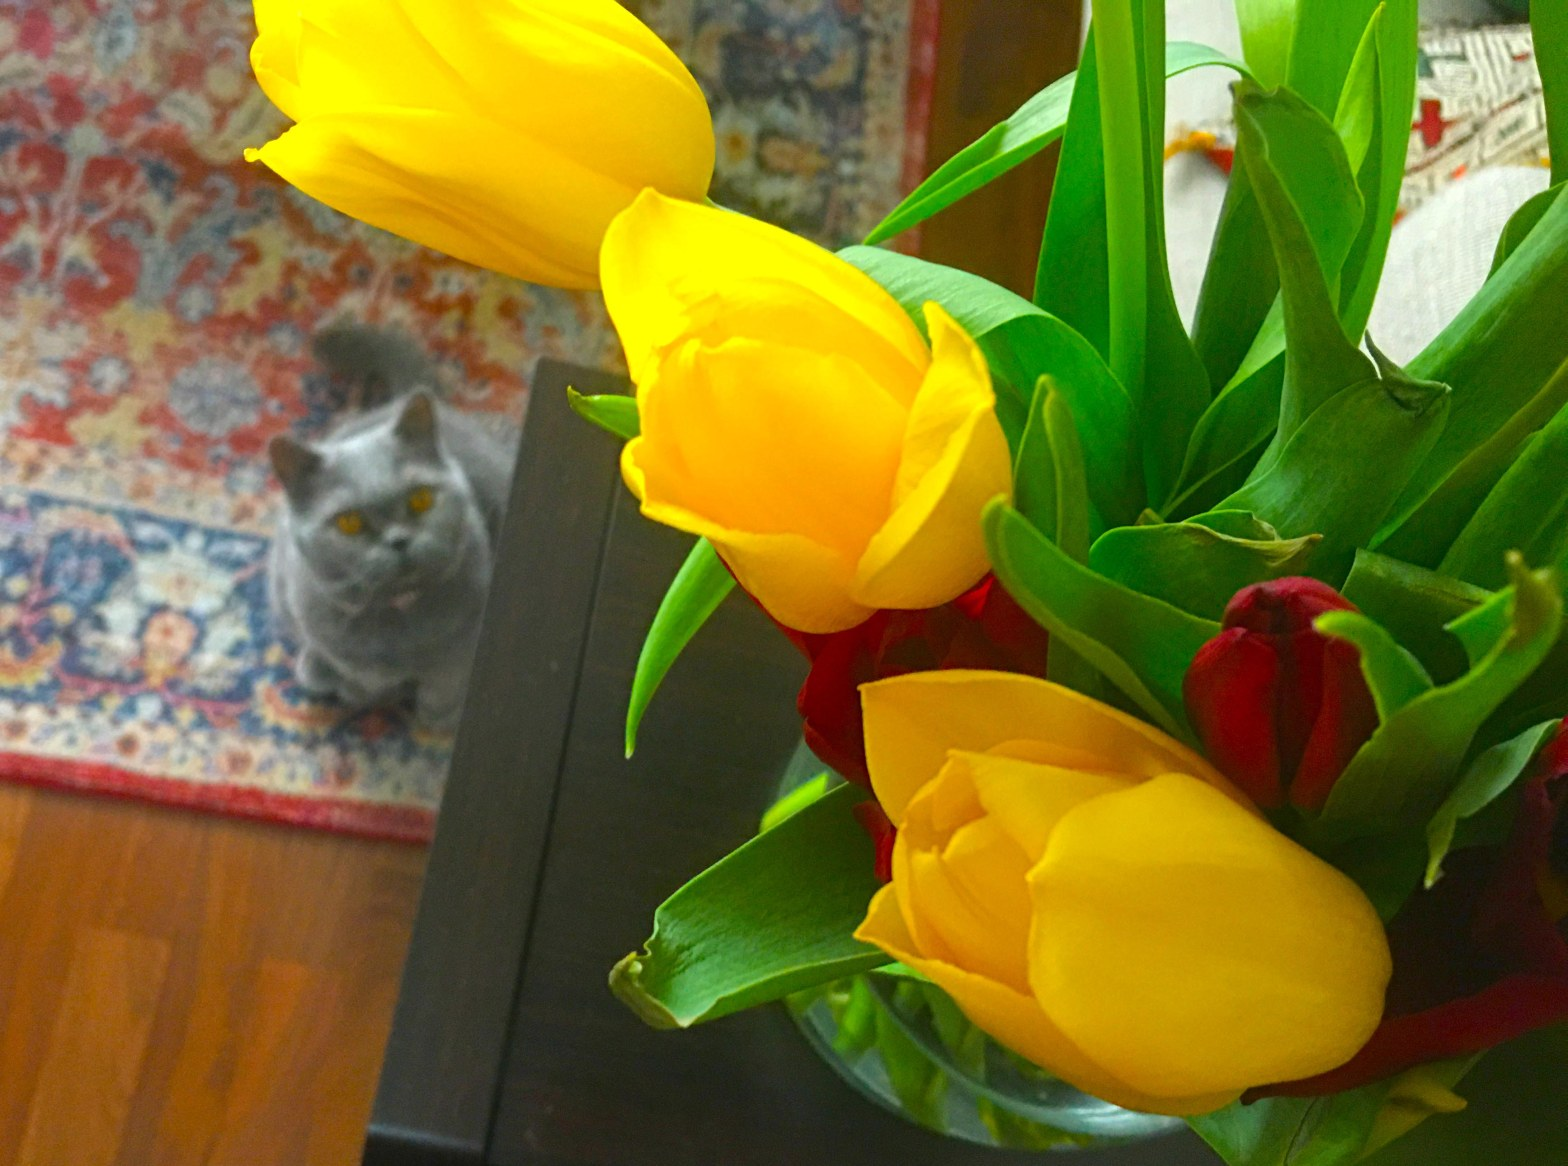 Photograph of BlueBlue the cat looking at tulips (Deptford, London)